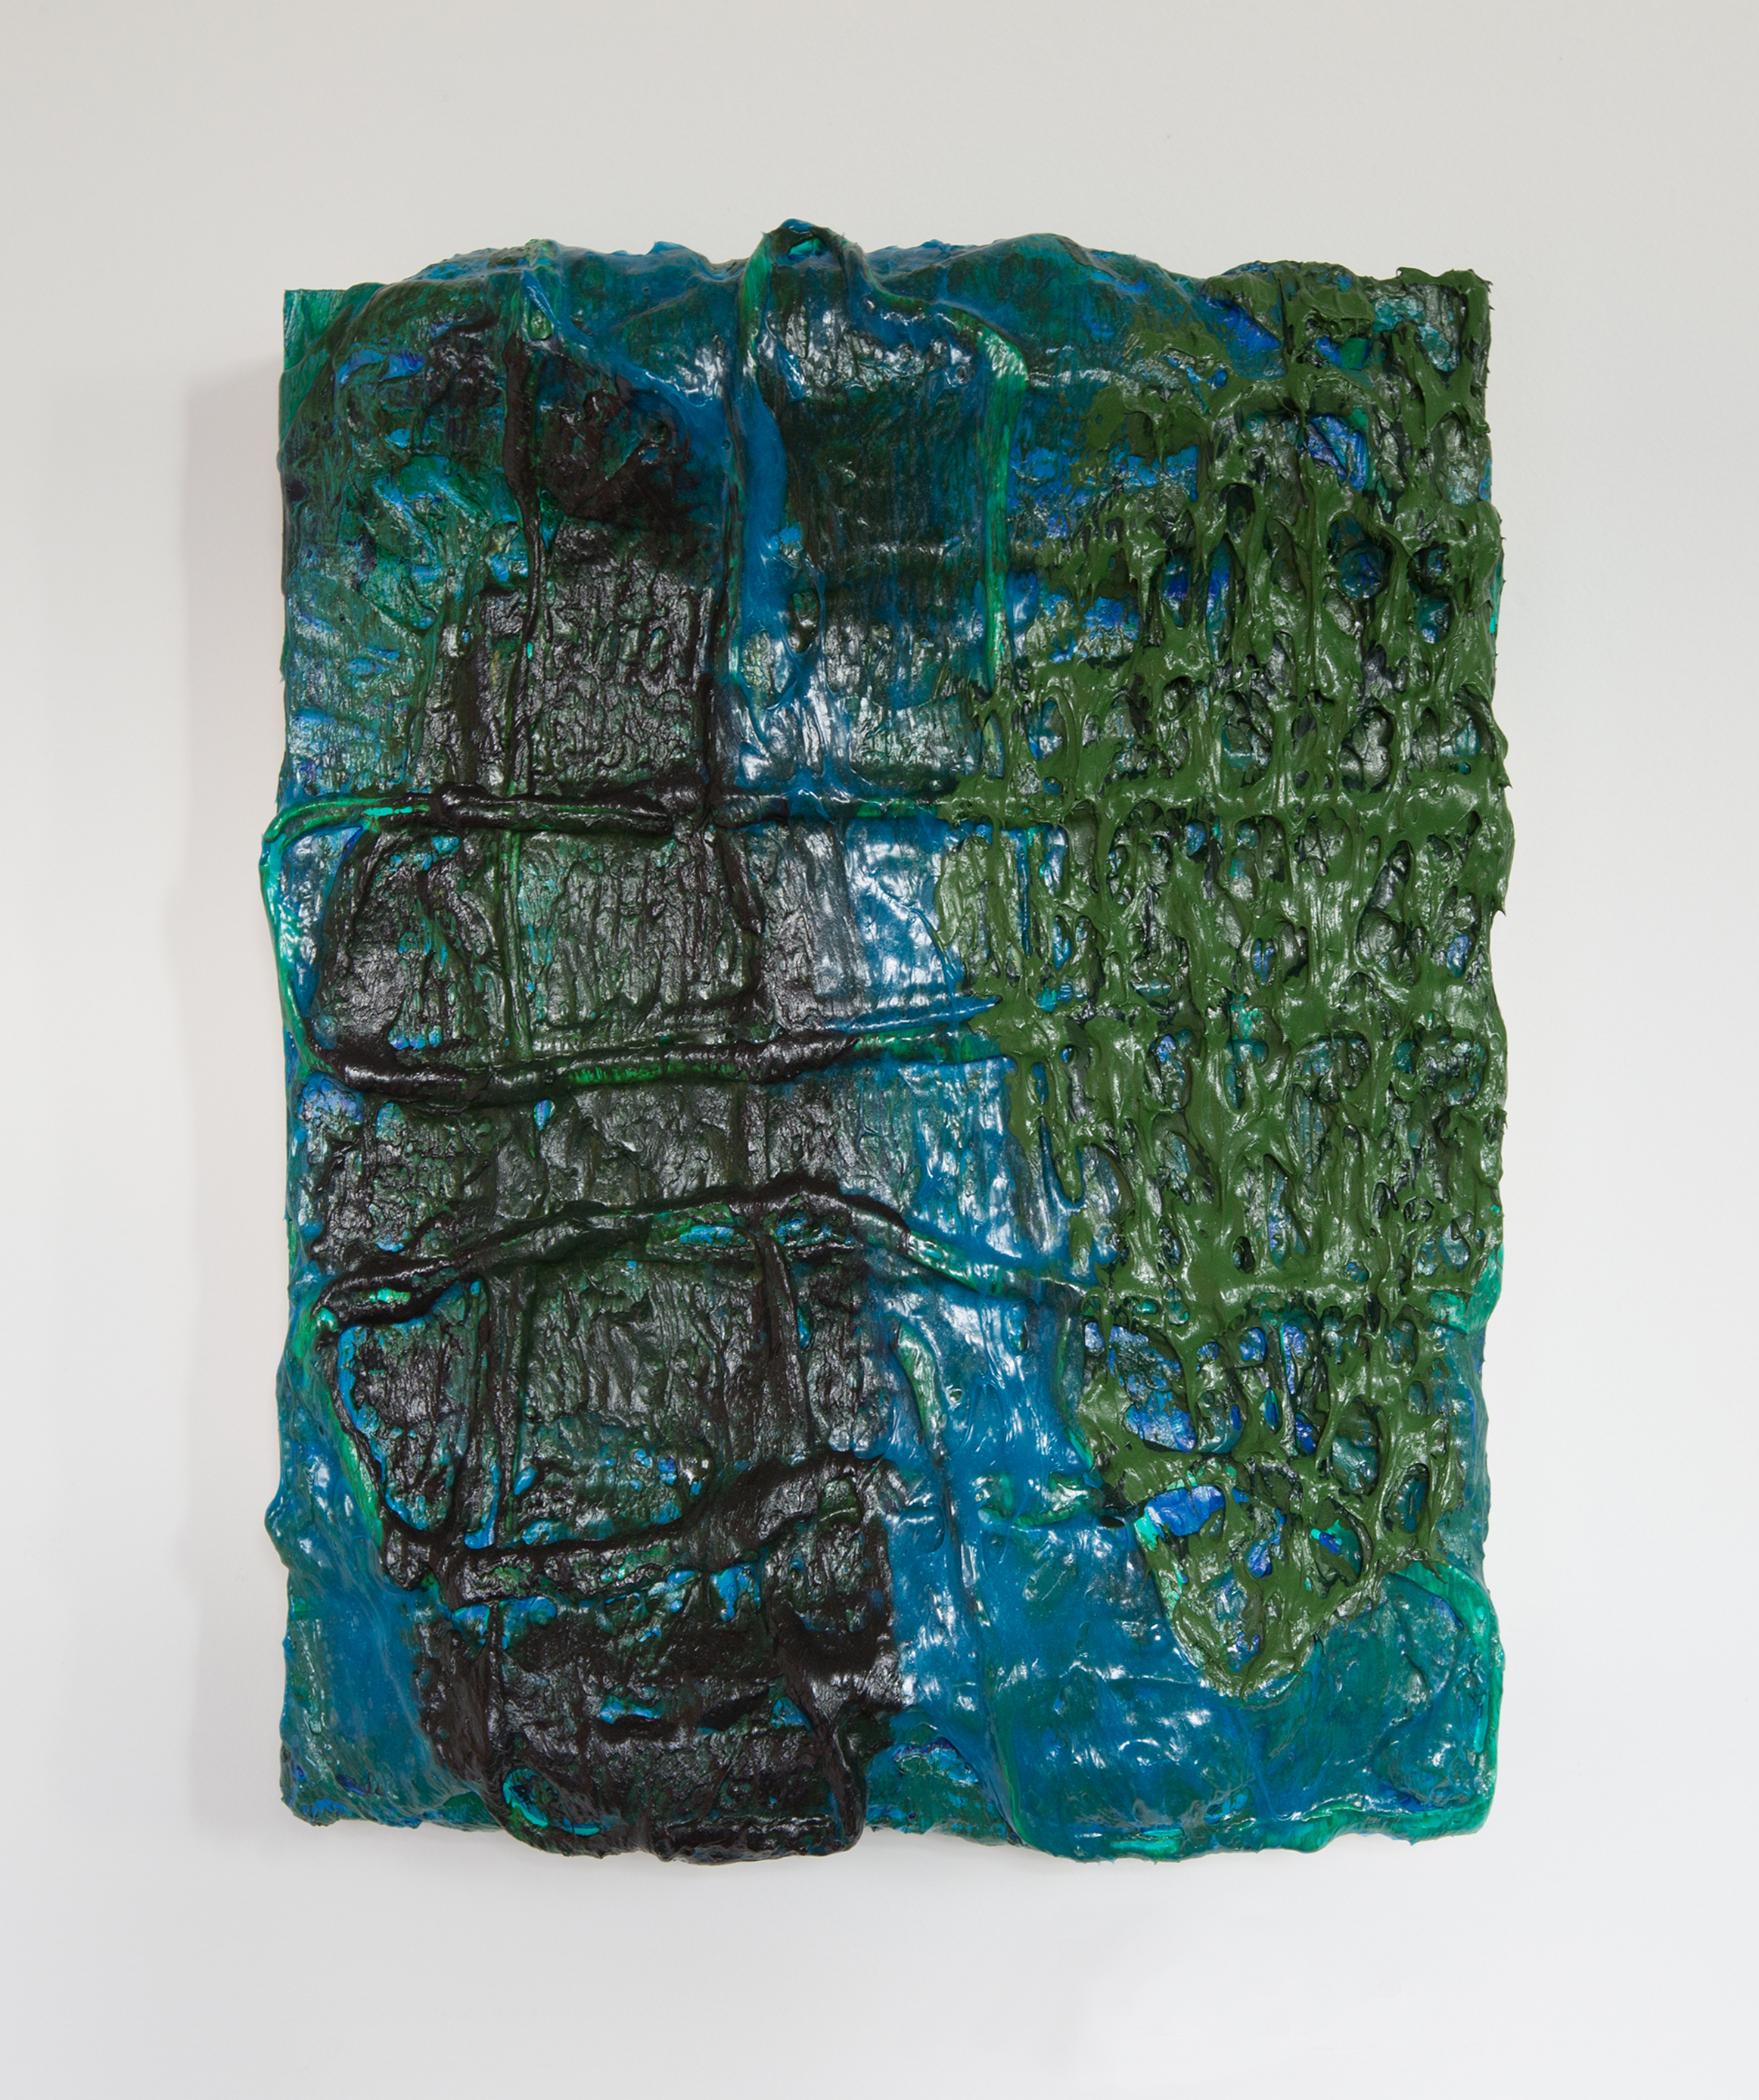 Joshua Thompson,  Without Turbidity The Bay Presents Itself To Thee 1 , 2017